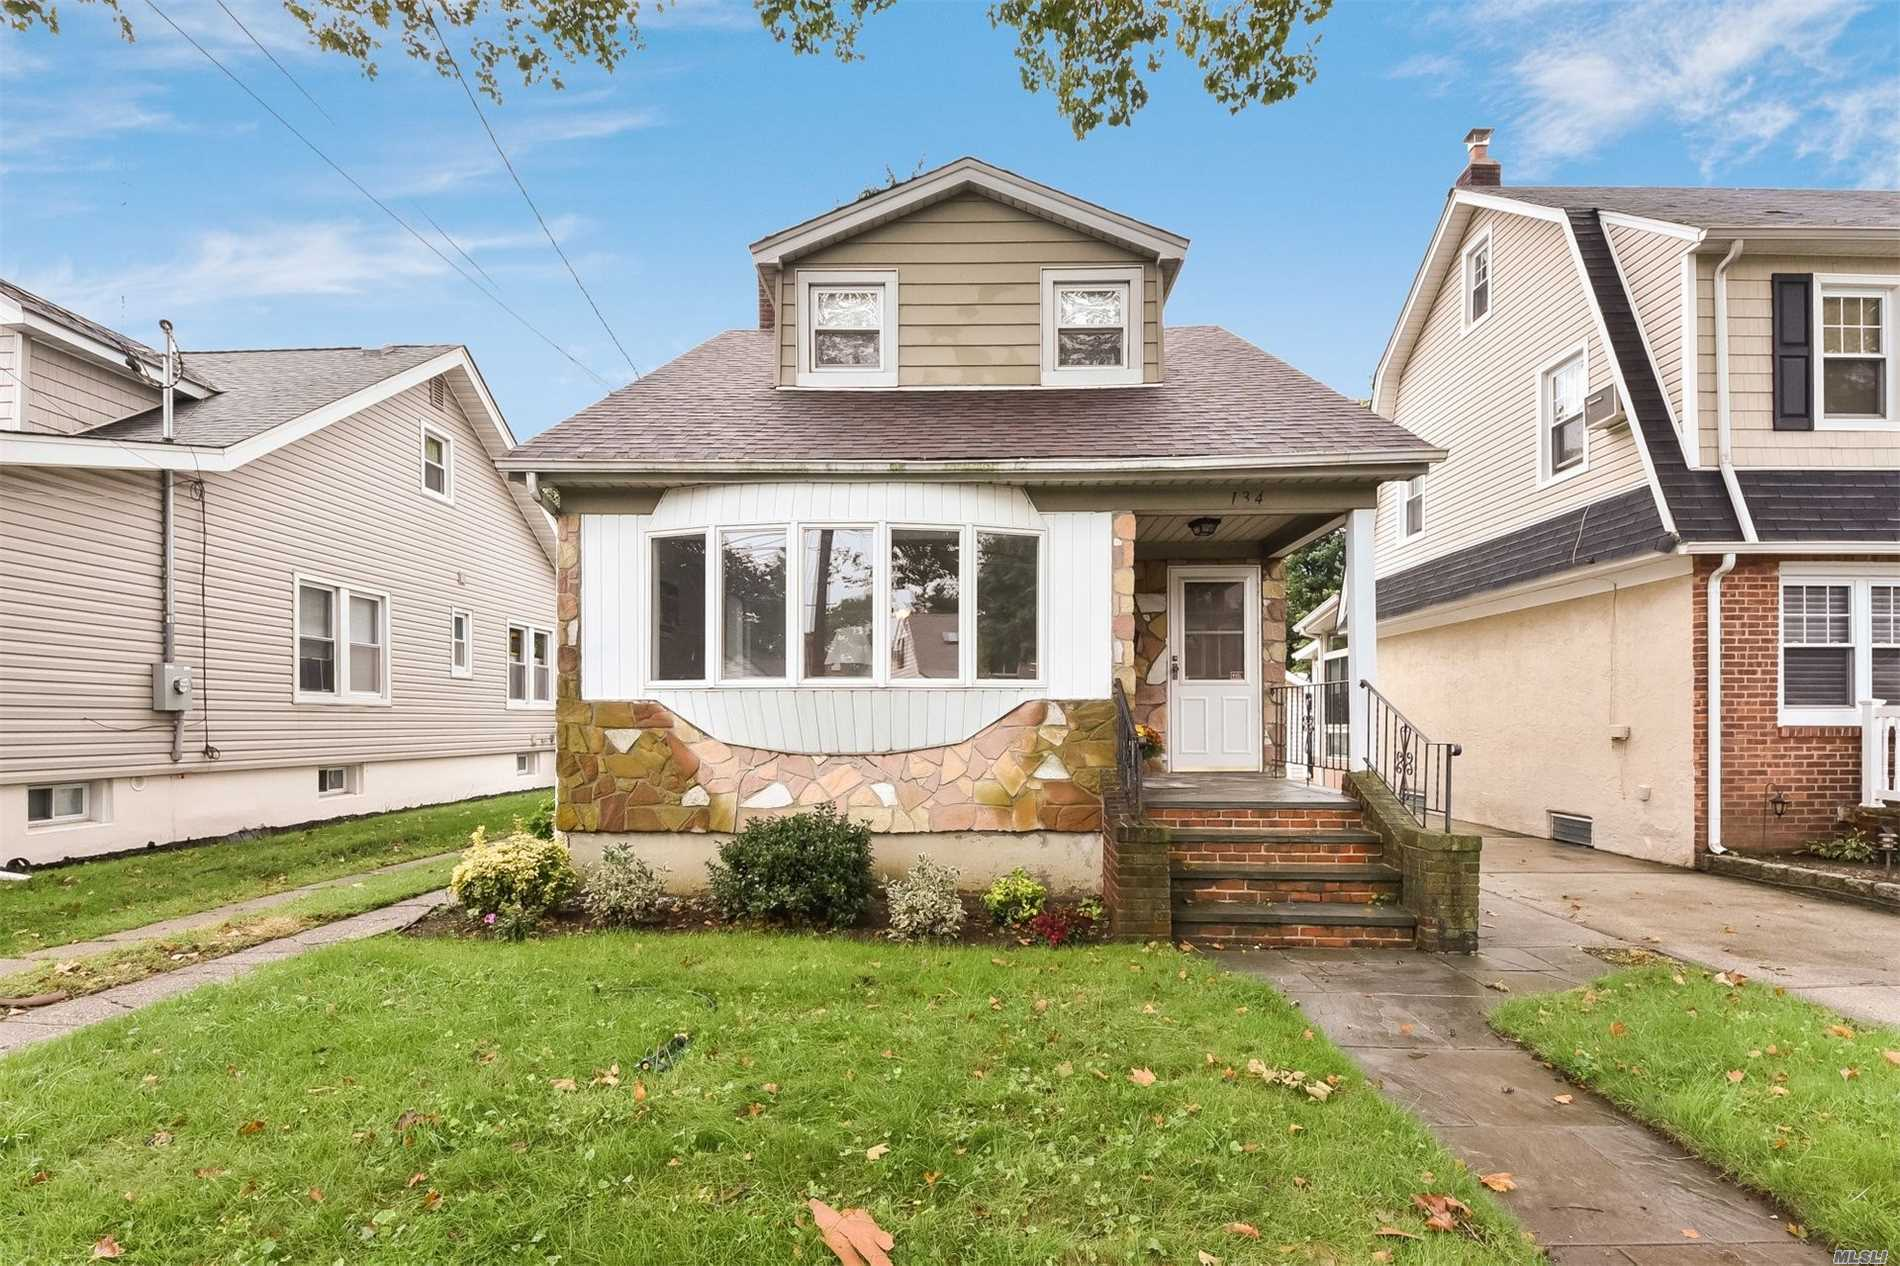 Charming Cape In The Incorporated Village Of Floral Park! Living Room, Formal Dining Room, Newly Renovated Eat-In-Kitchen With Vaulted Ceiling. Second Floor Has 2 Bedrooms And 1 Full Bath. Full, Finished Basement.New Roof.